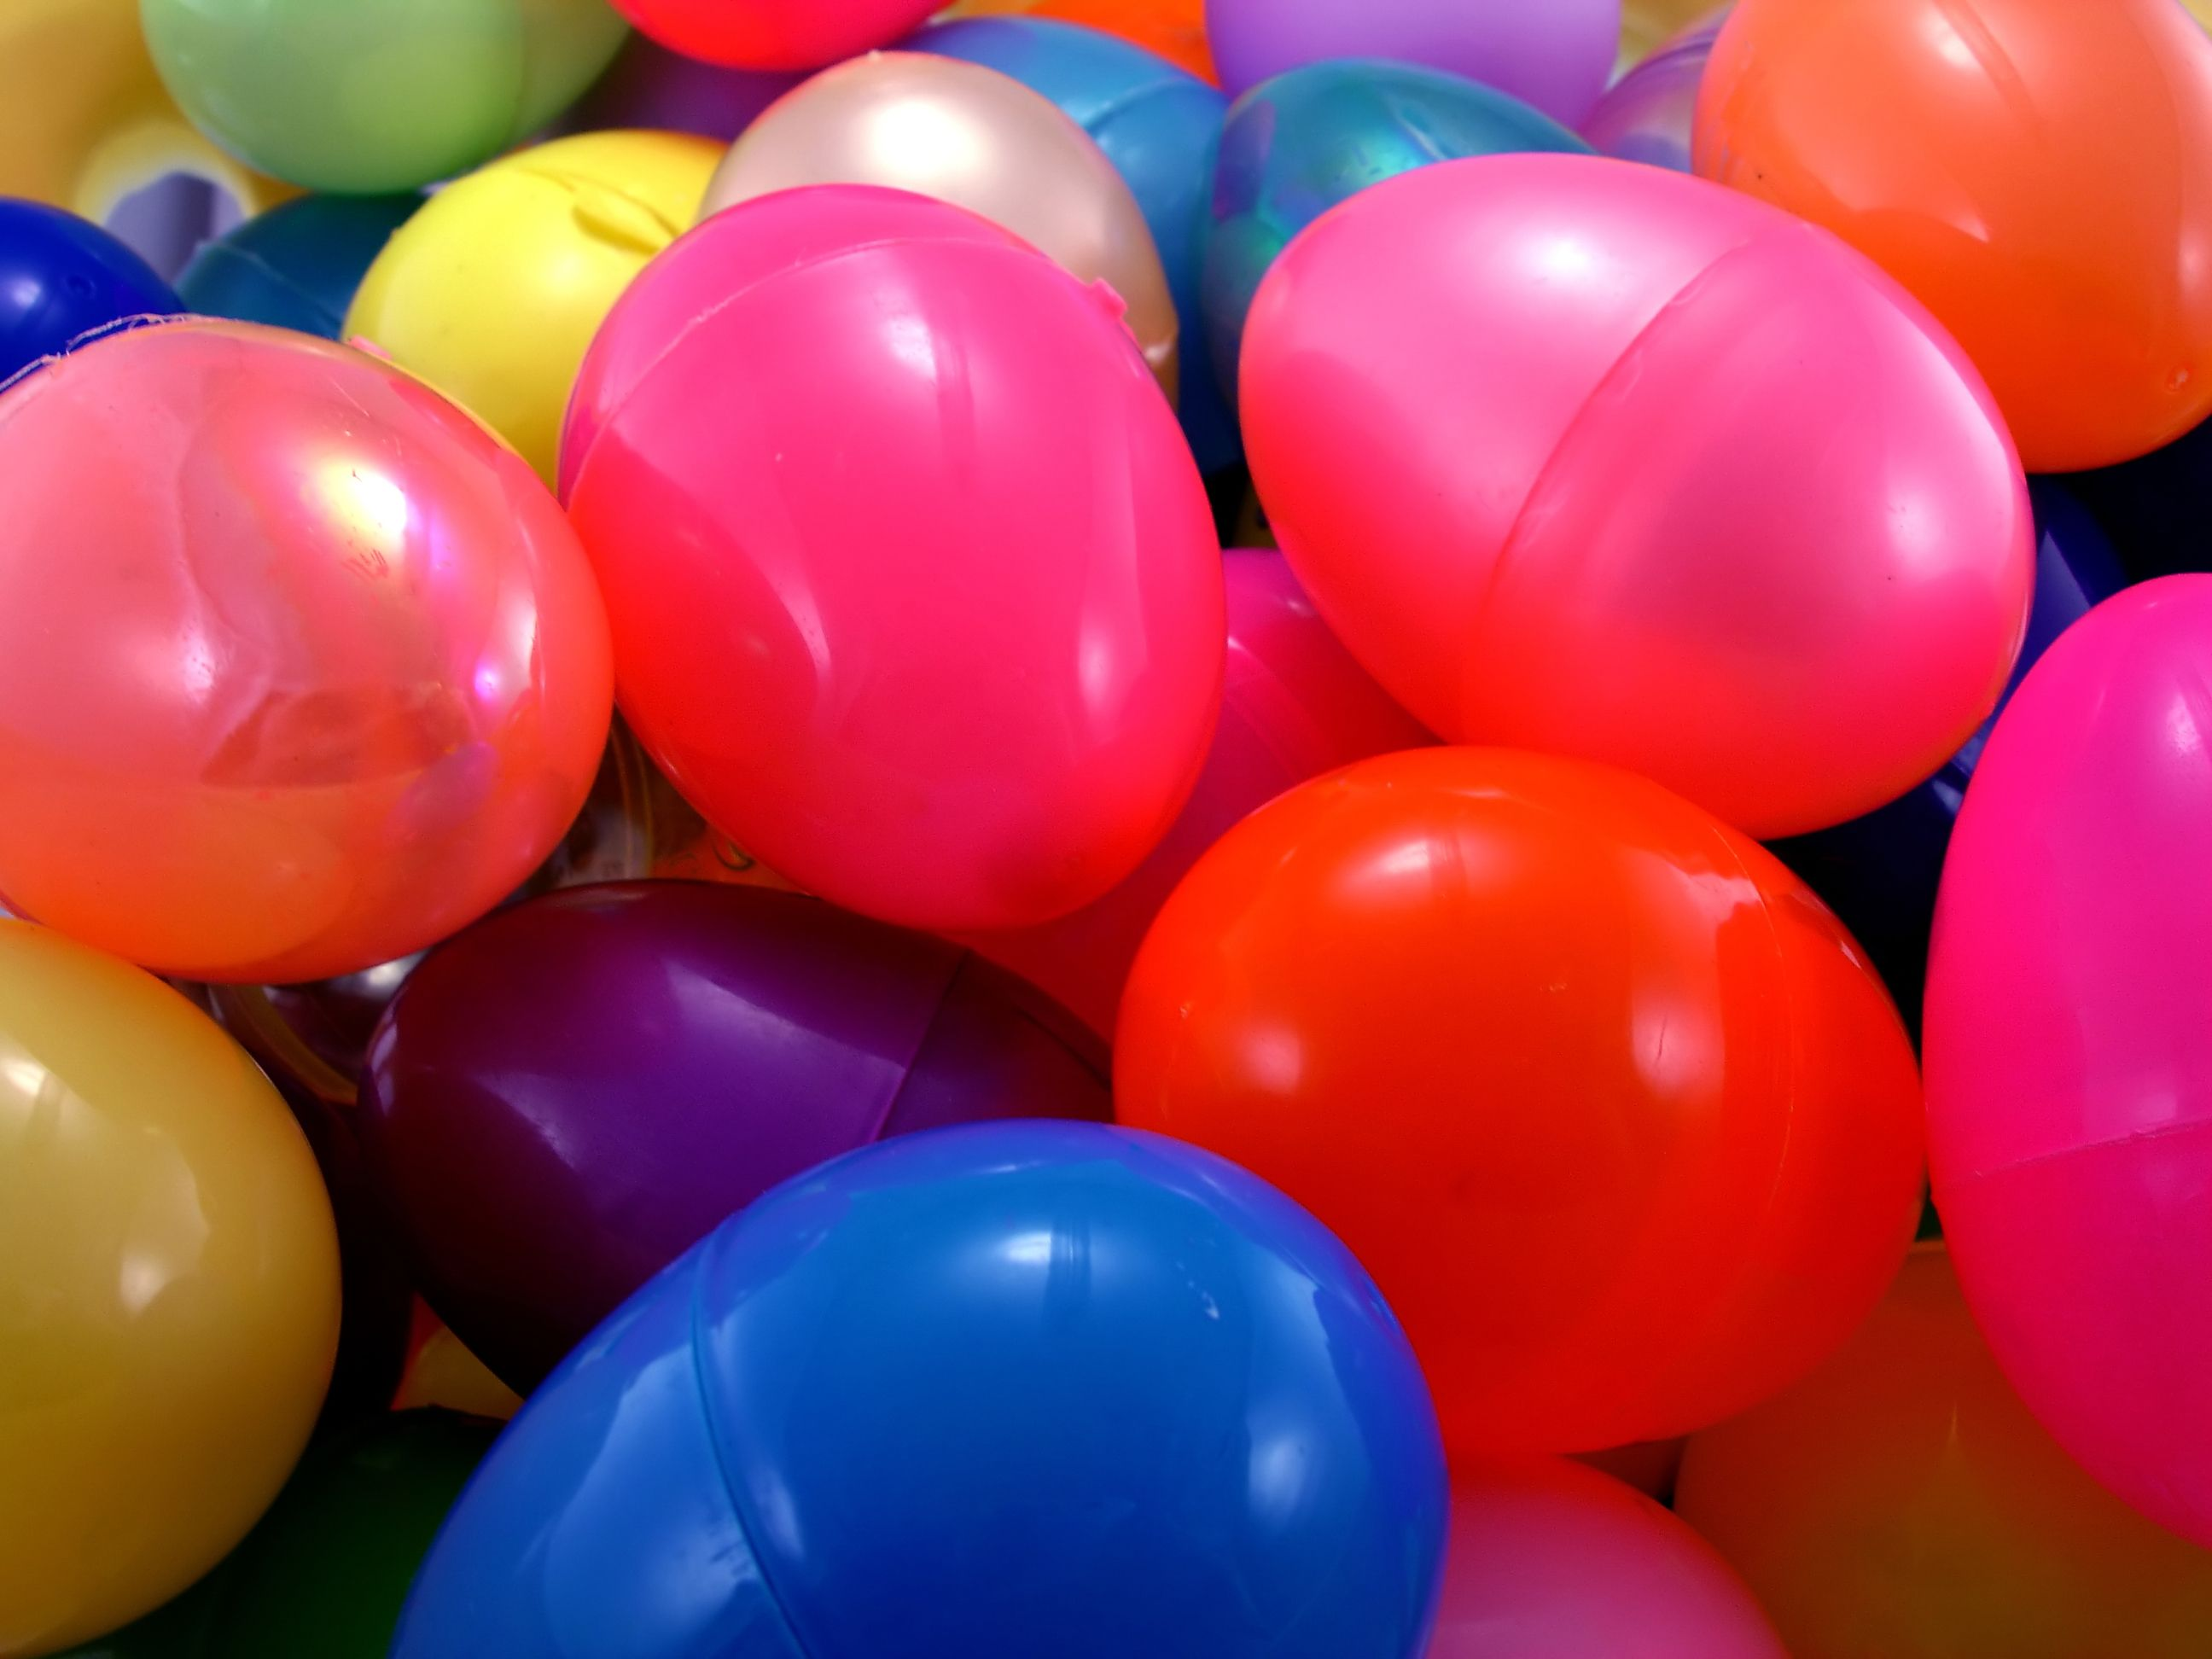 15 Games To Play With Plastic Eggs Easter Time